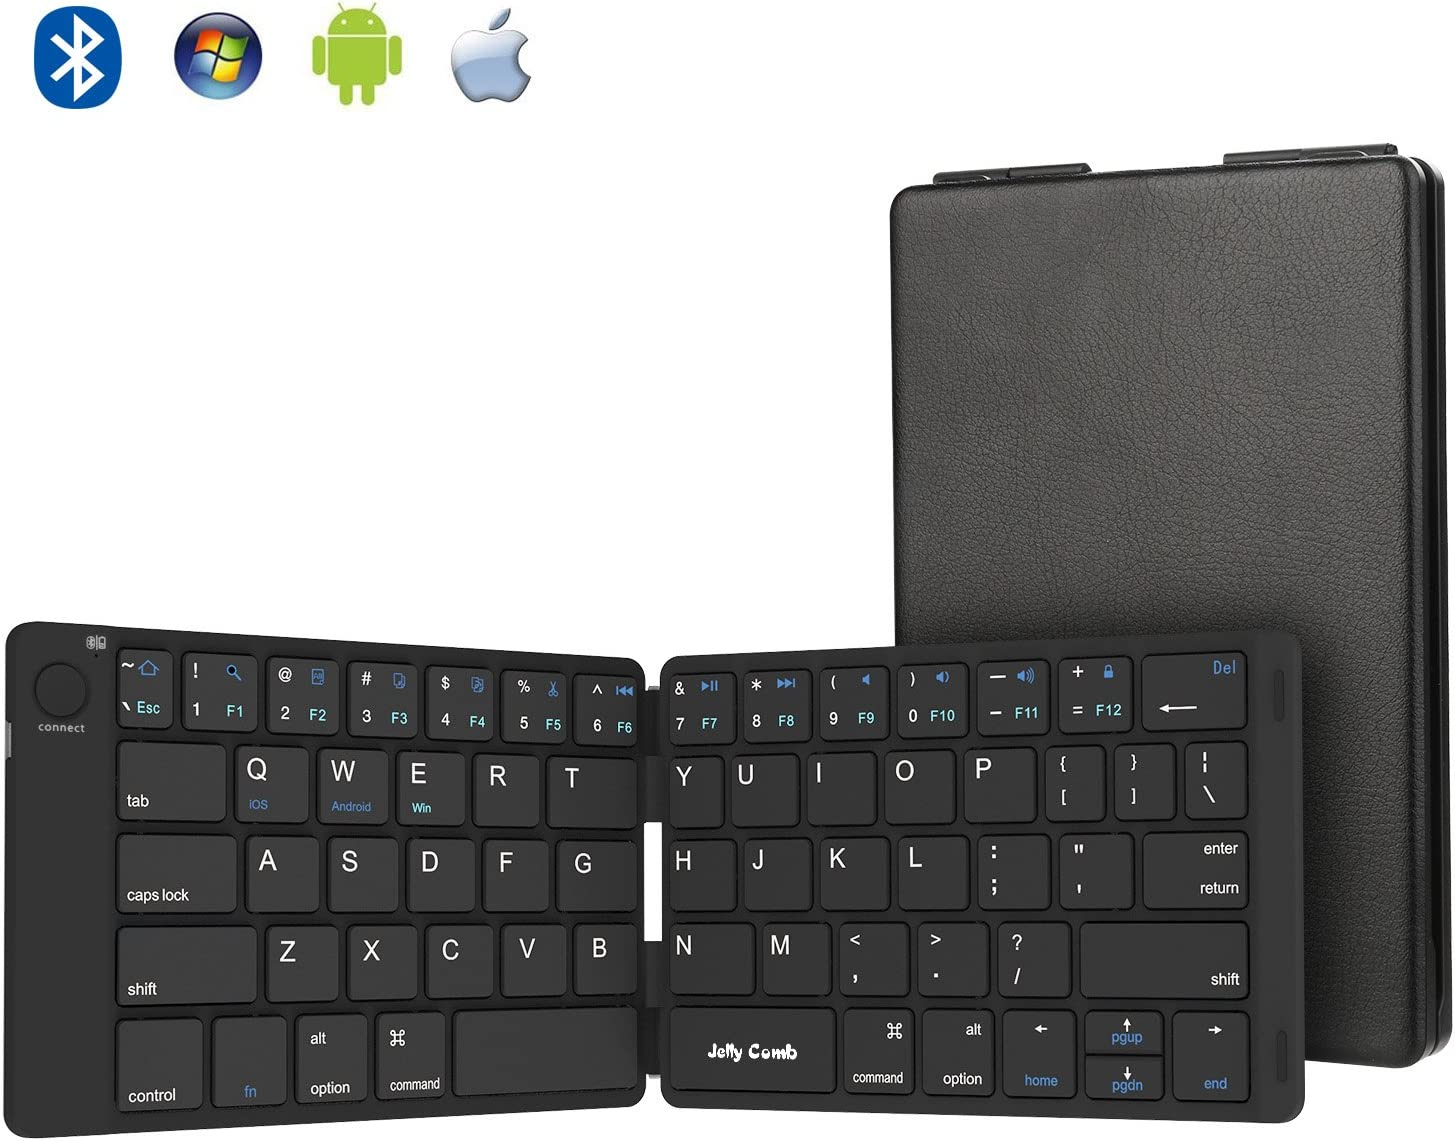 Foldable Bluetooth Keyboard, Jelly Comb Ultra Slim Foldable BT Keyboard B047 Rechargeable Pocket Sized Keyboard for All iOS Android Windows Laptop Tablet Smartphone and More (Black)